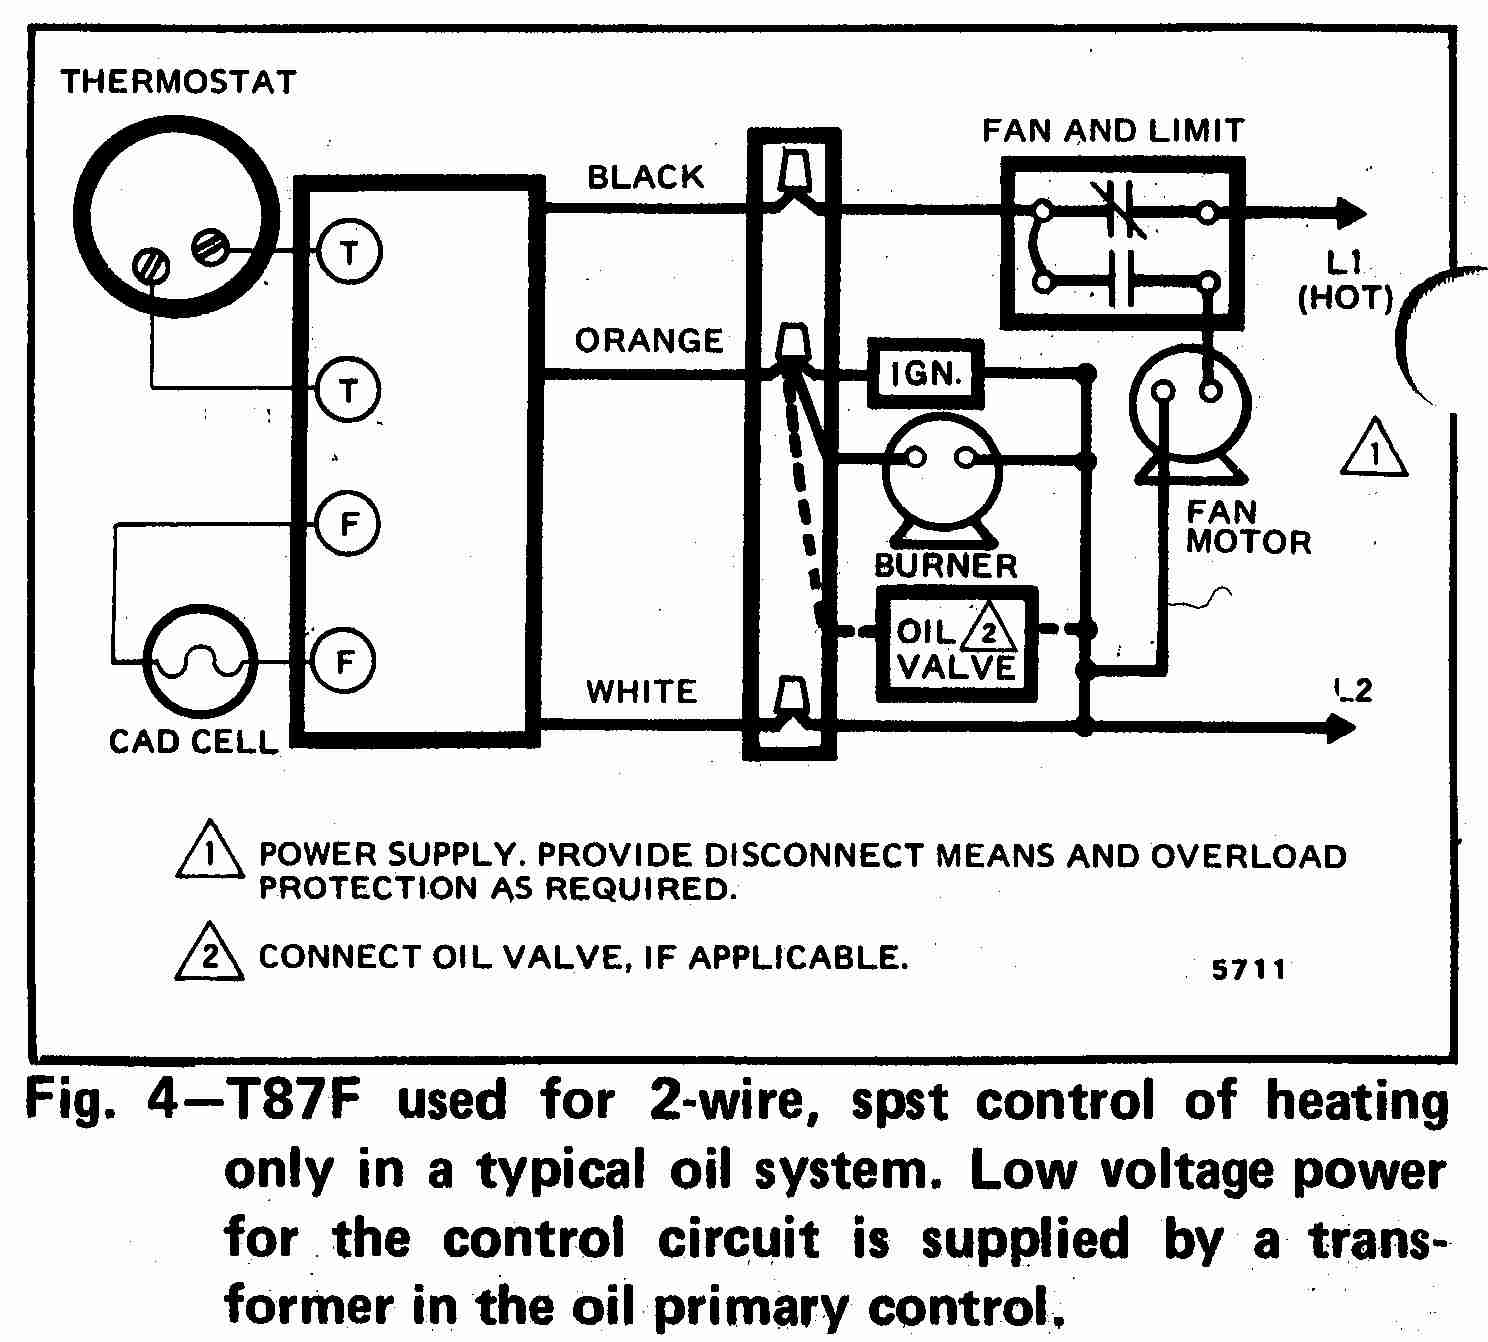 room thermostat wiring diagrams for hvac systems  honeywell t87f thermostat wiring diagram for 2 wire, spst control of heating only in